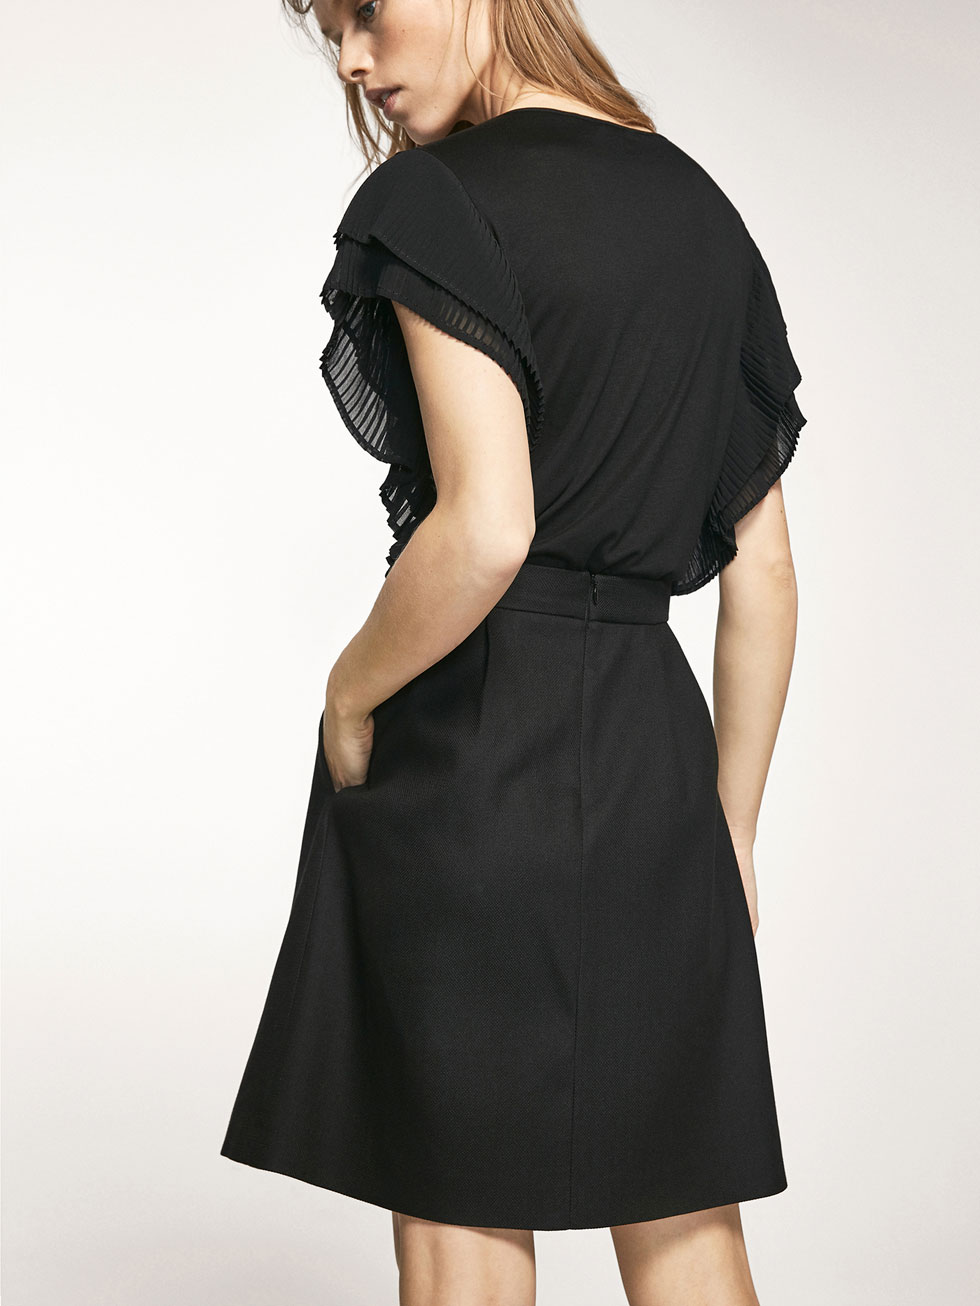 PLEATED SKIRT WITH TEXTURED WEAVE